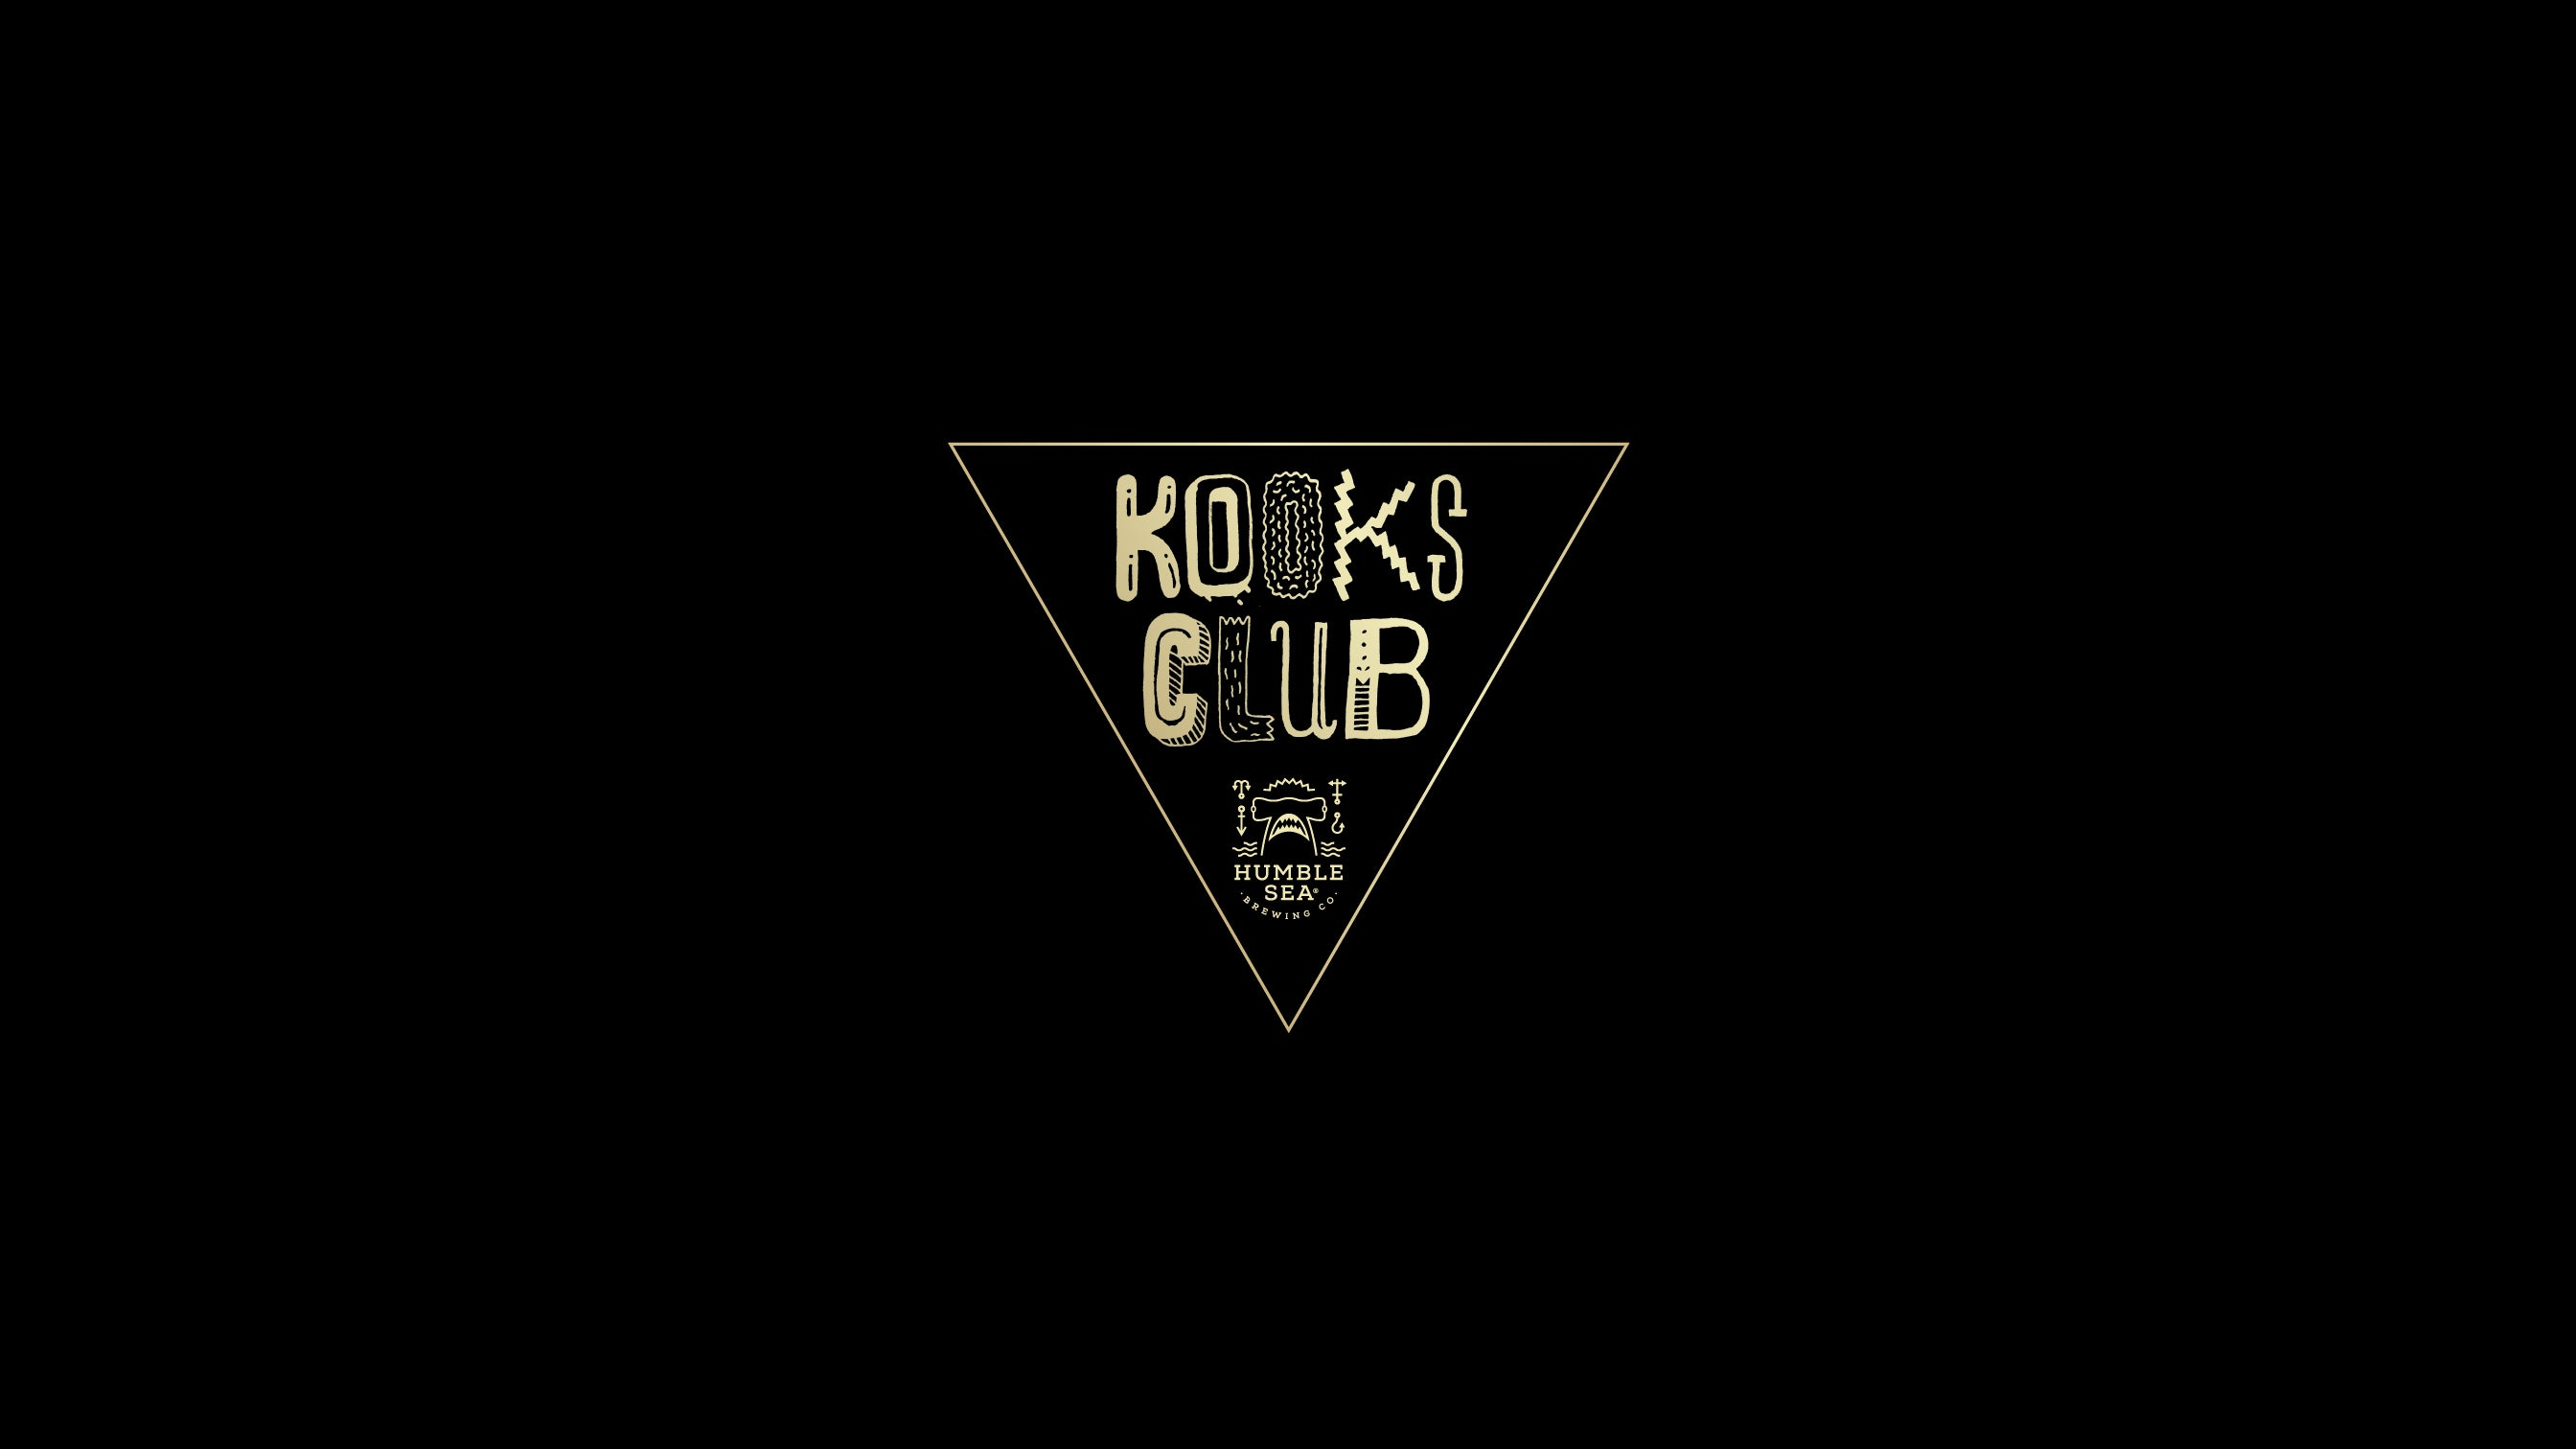 Kooks Club - Humble Sea Membership club